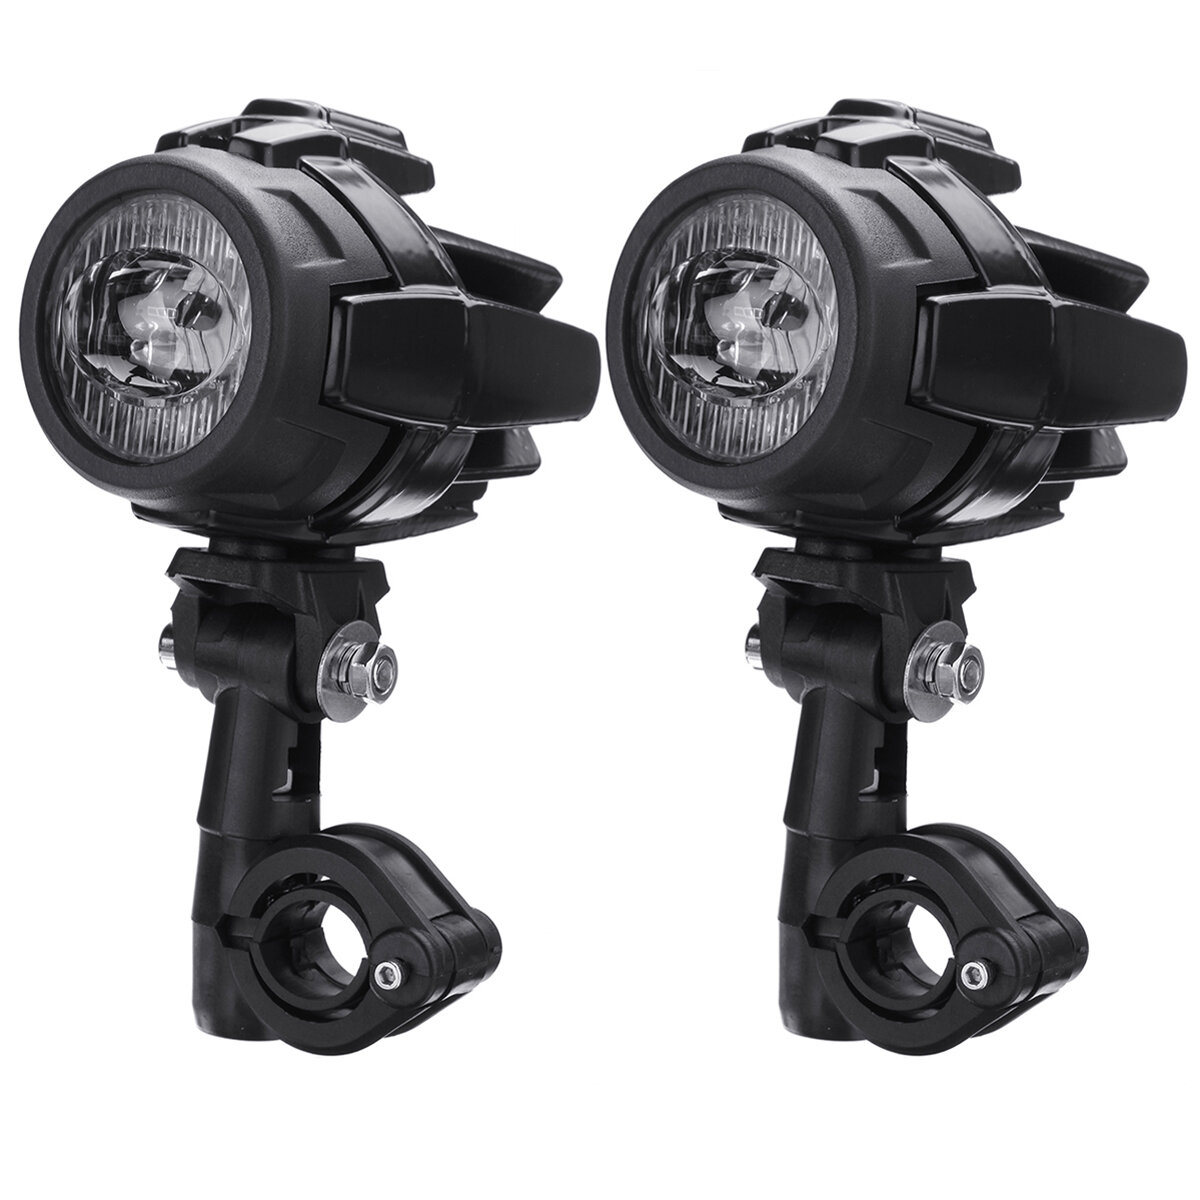 Motorcycle Front LED Headlights Fog Running Spot Light Super Bright For BMW R1200GS ADV OD - 1